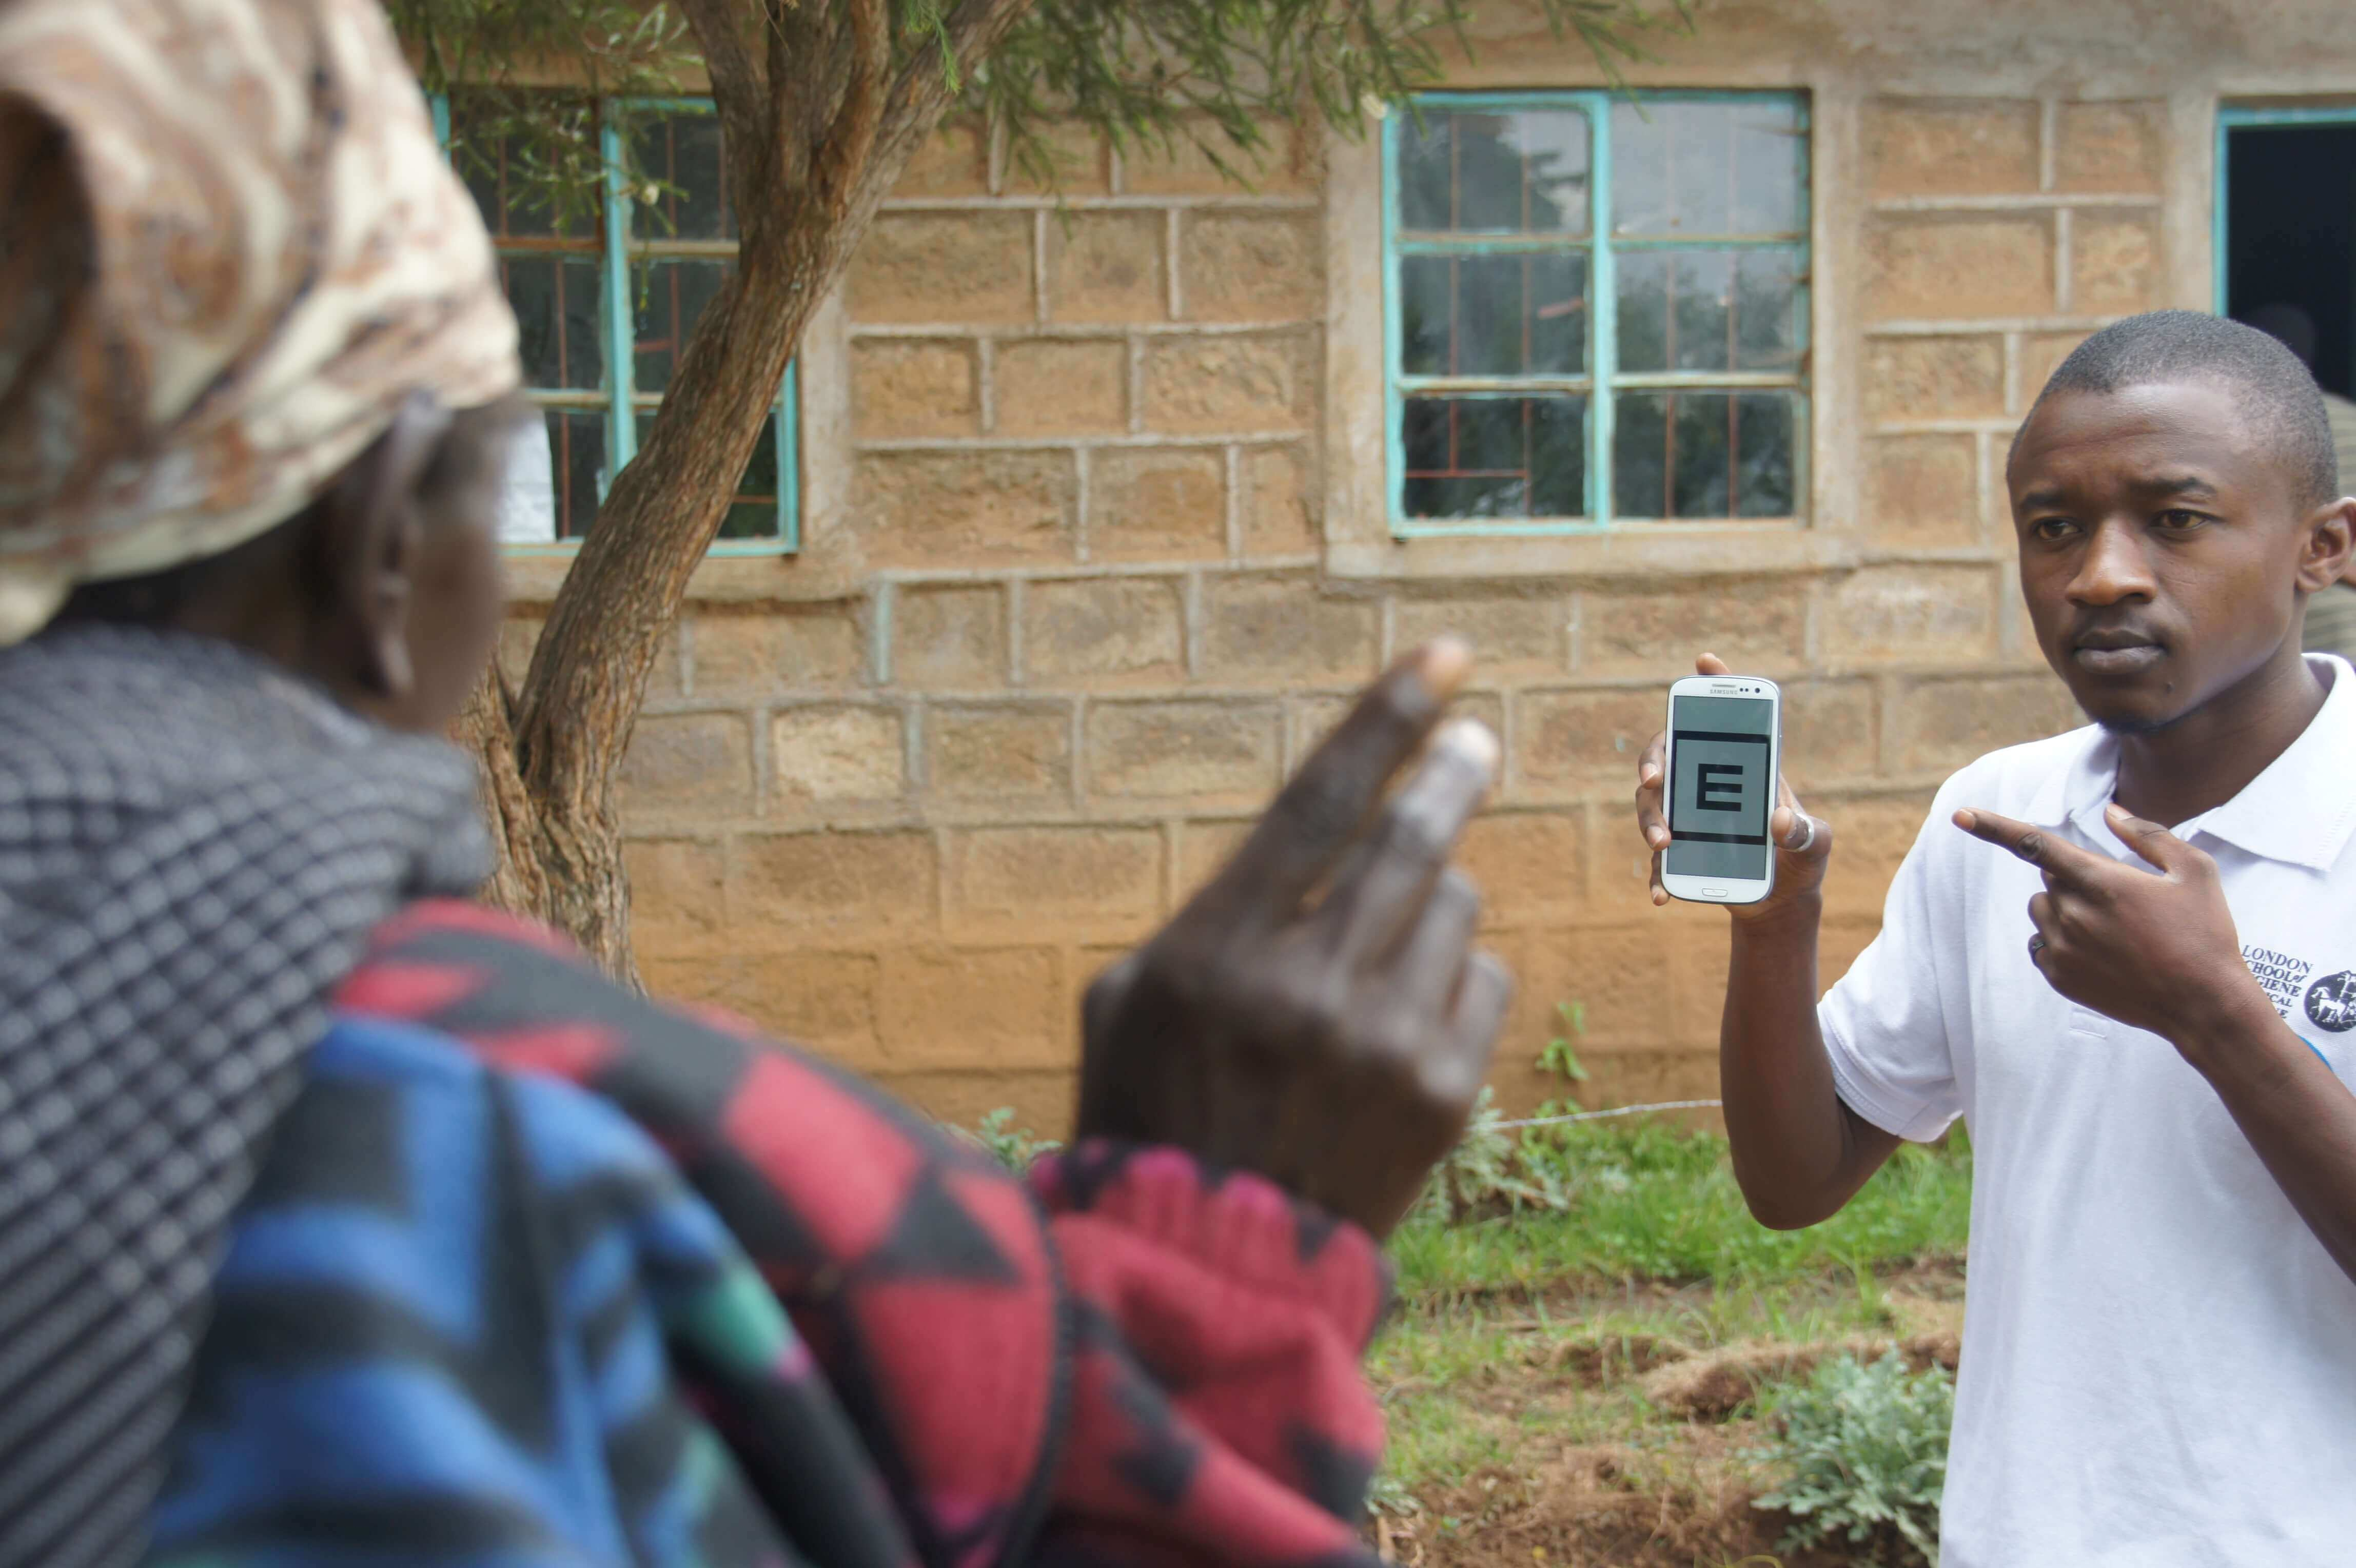 A healthcare worker in Kenya holding up a smartphone showing the Peek Acuity test, towards a woman with her back to the camera, pointing to indicate the direction that the letter E on the screen is facing.